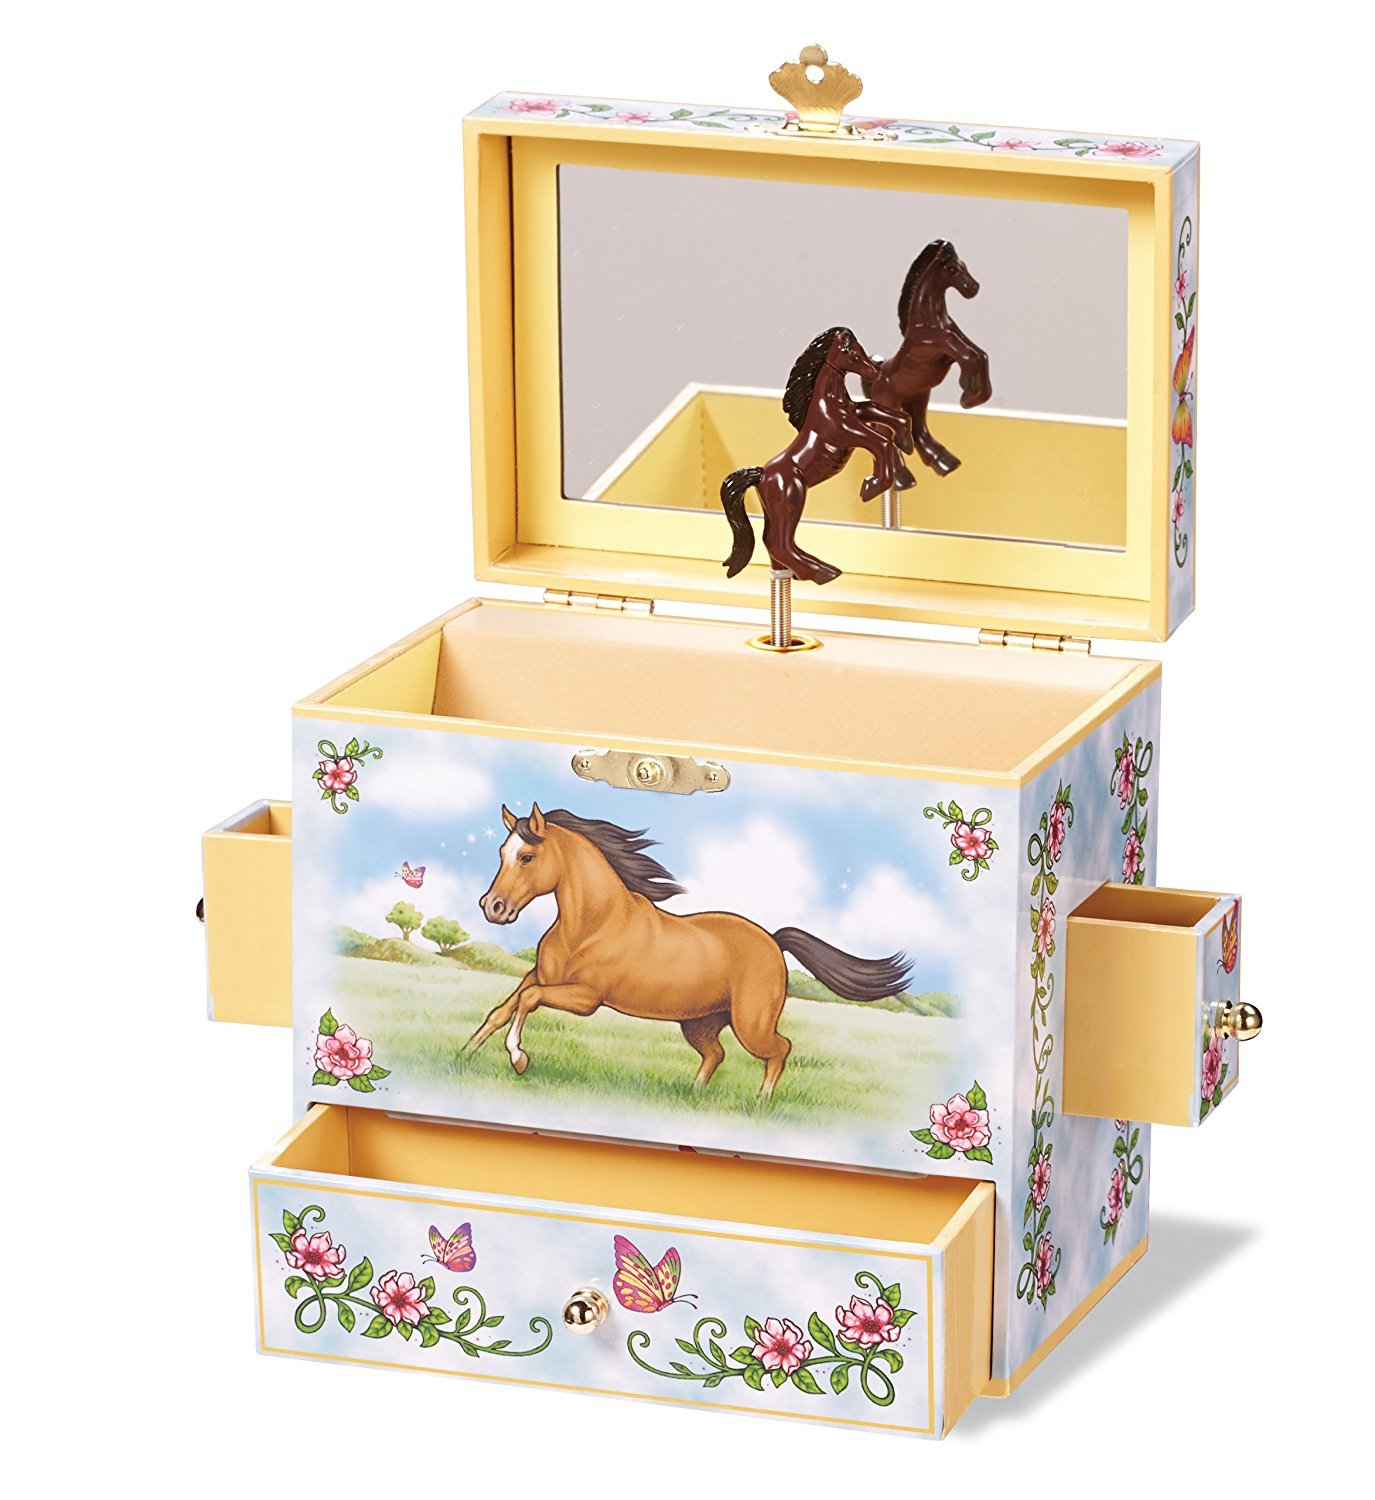 Enchantmints Wild and Free Musical Jewelry Box